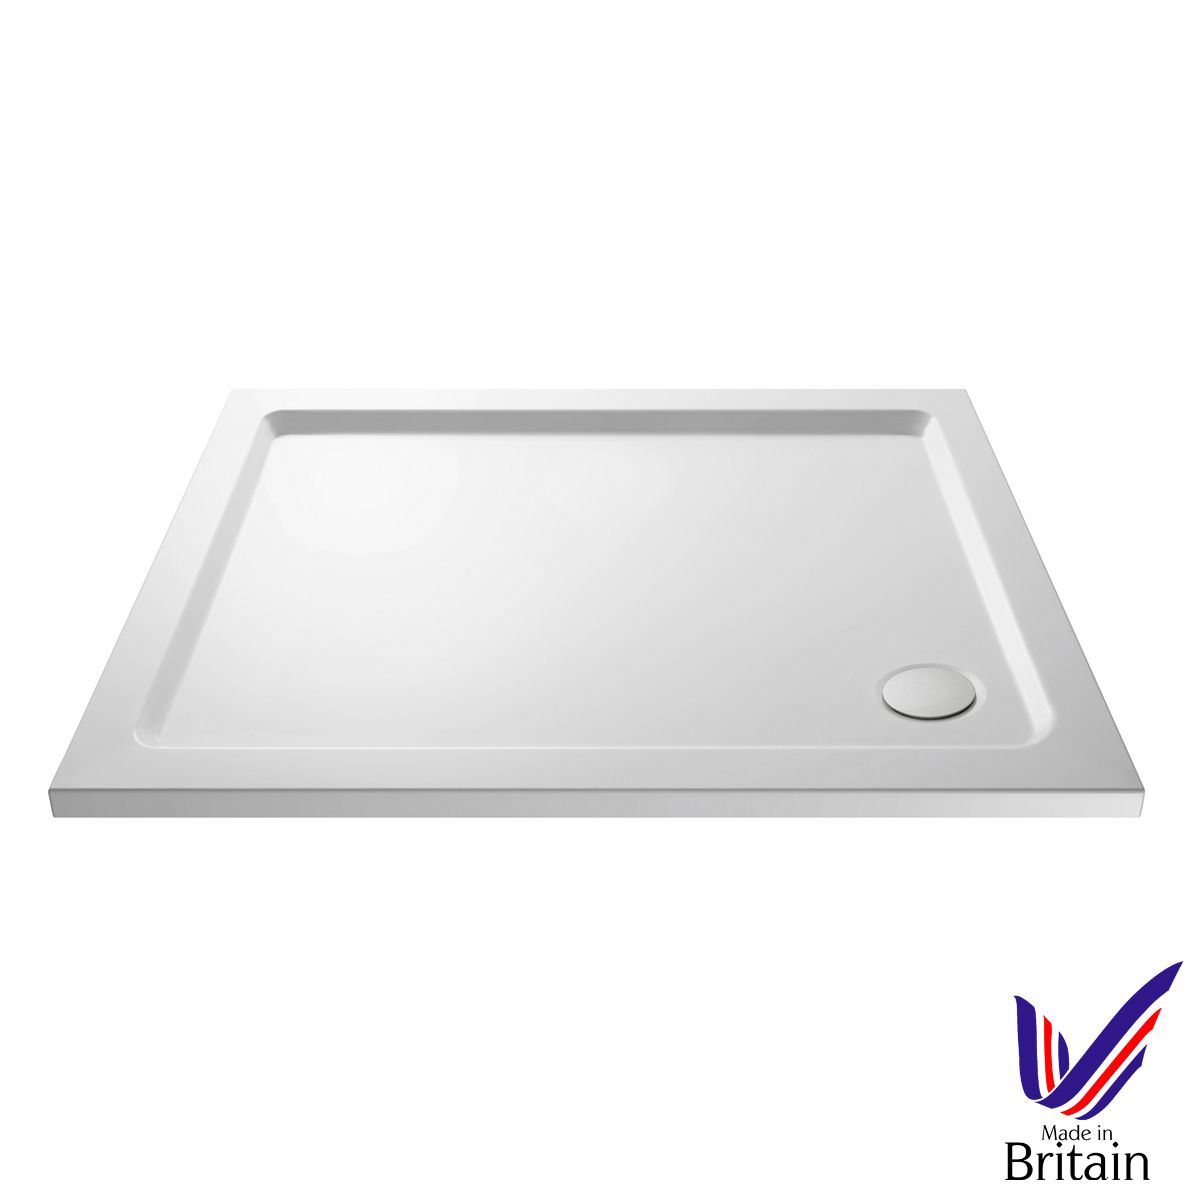 900 x 700 Shower Tray Rectangular Low Profile by Pearlstone